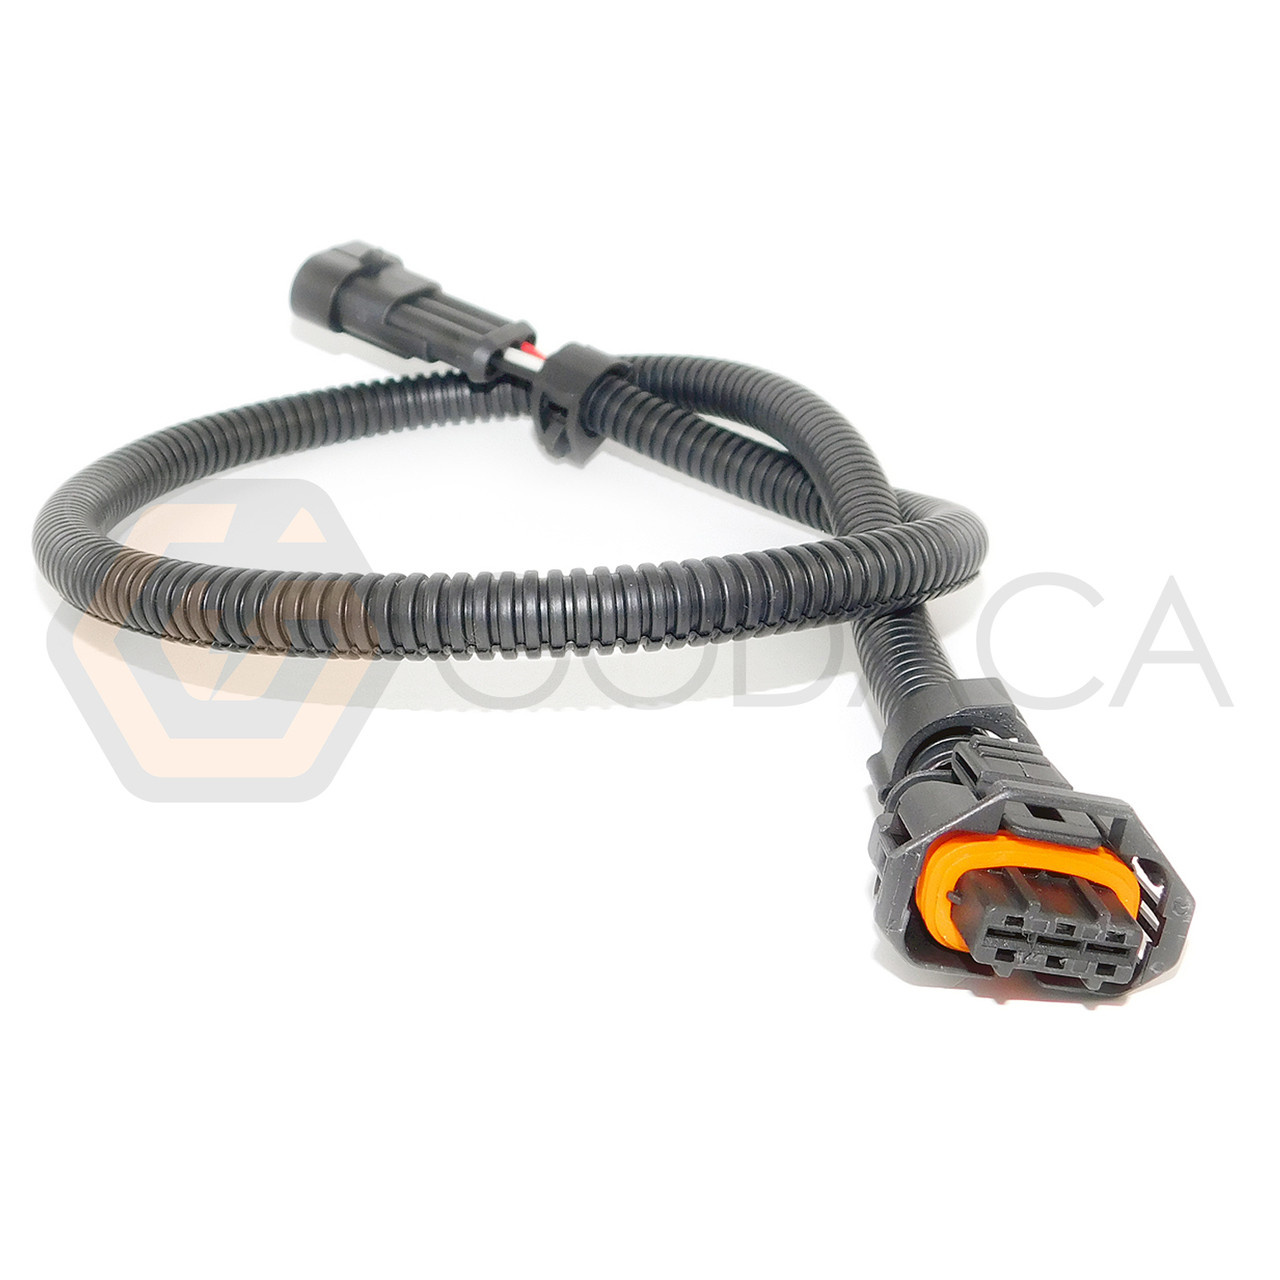 hight resolution of ls3 map sensor wiring wiring diagrams ford map sensor wiring diagram 1x wiring harness adapter for